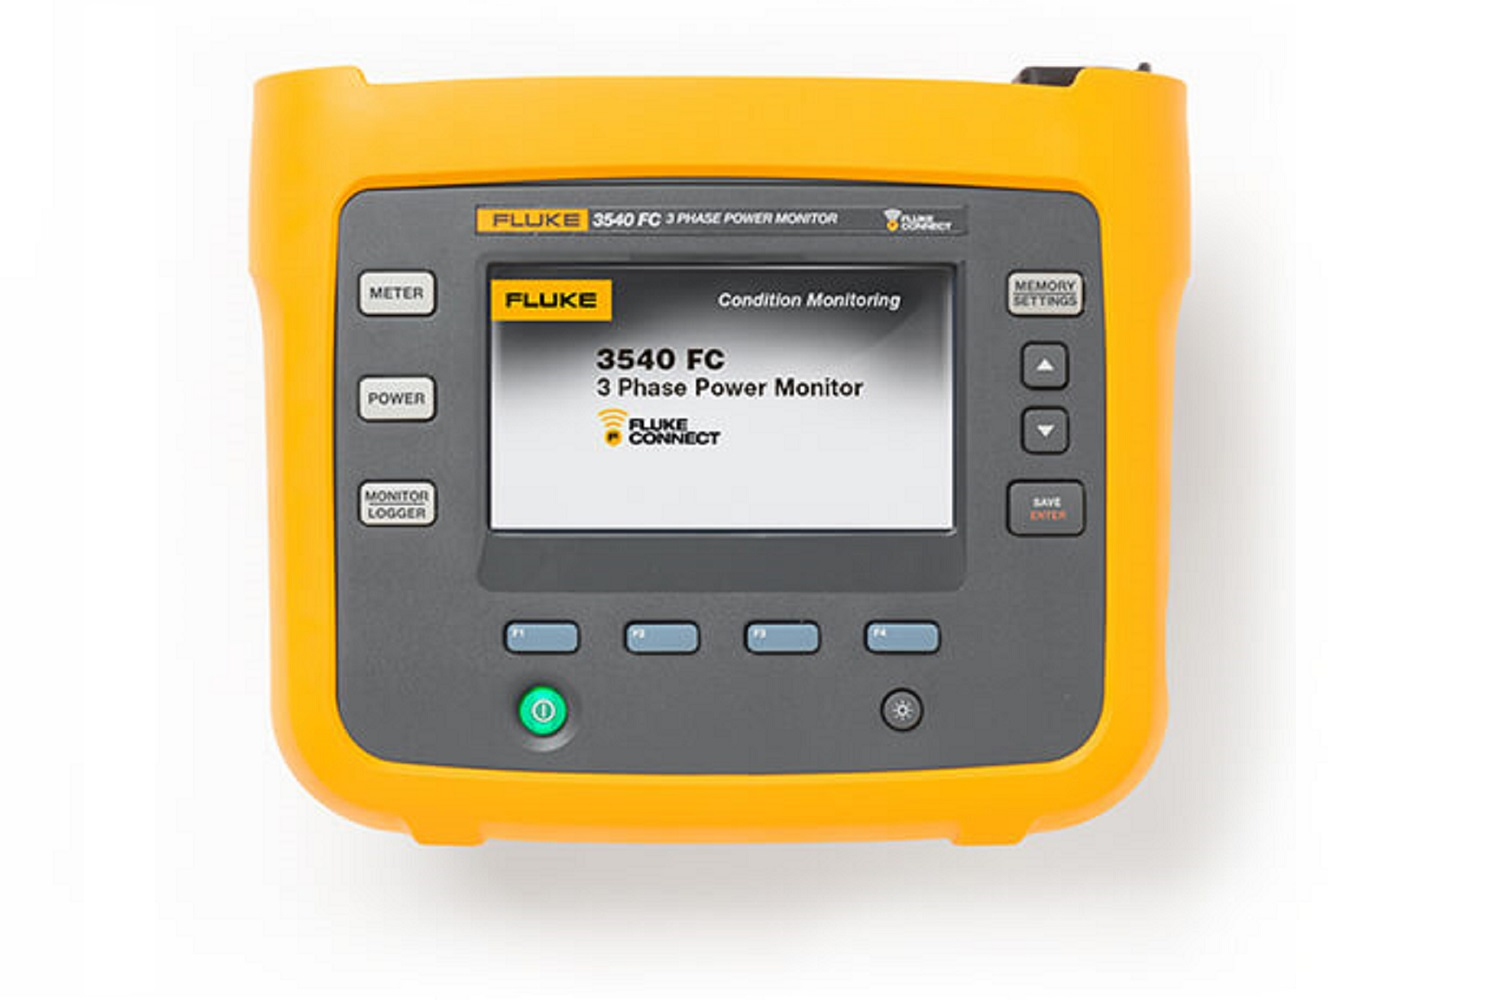 A clickable image of the Fluke 3540 FC Three-Phase Power Monitor. Leads to the product page.